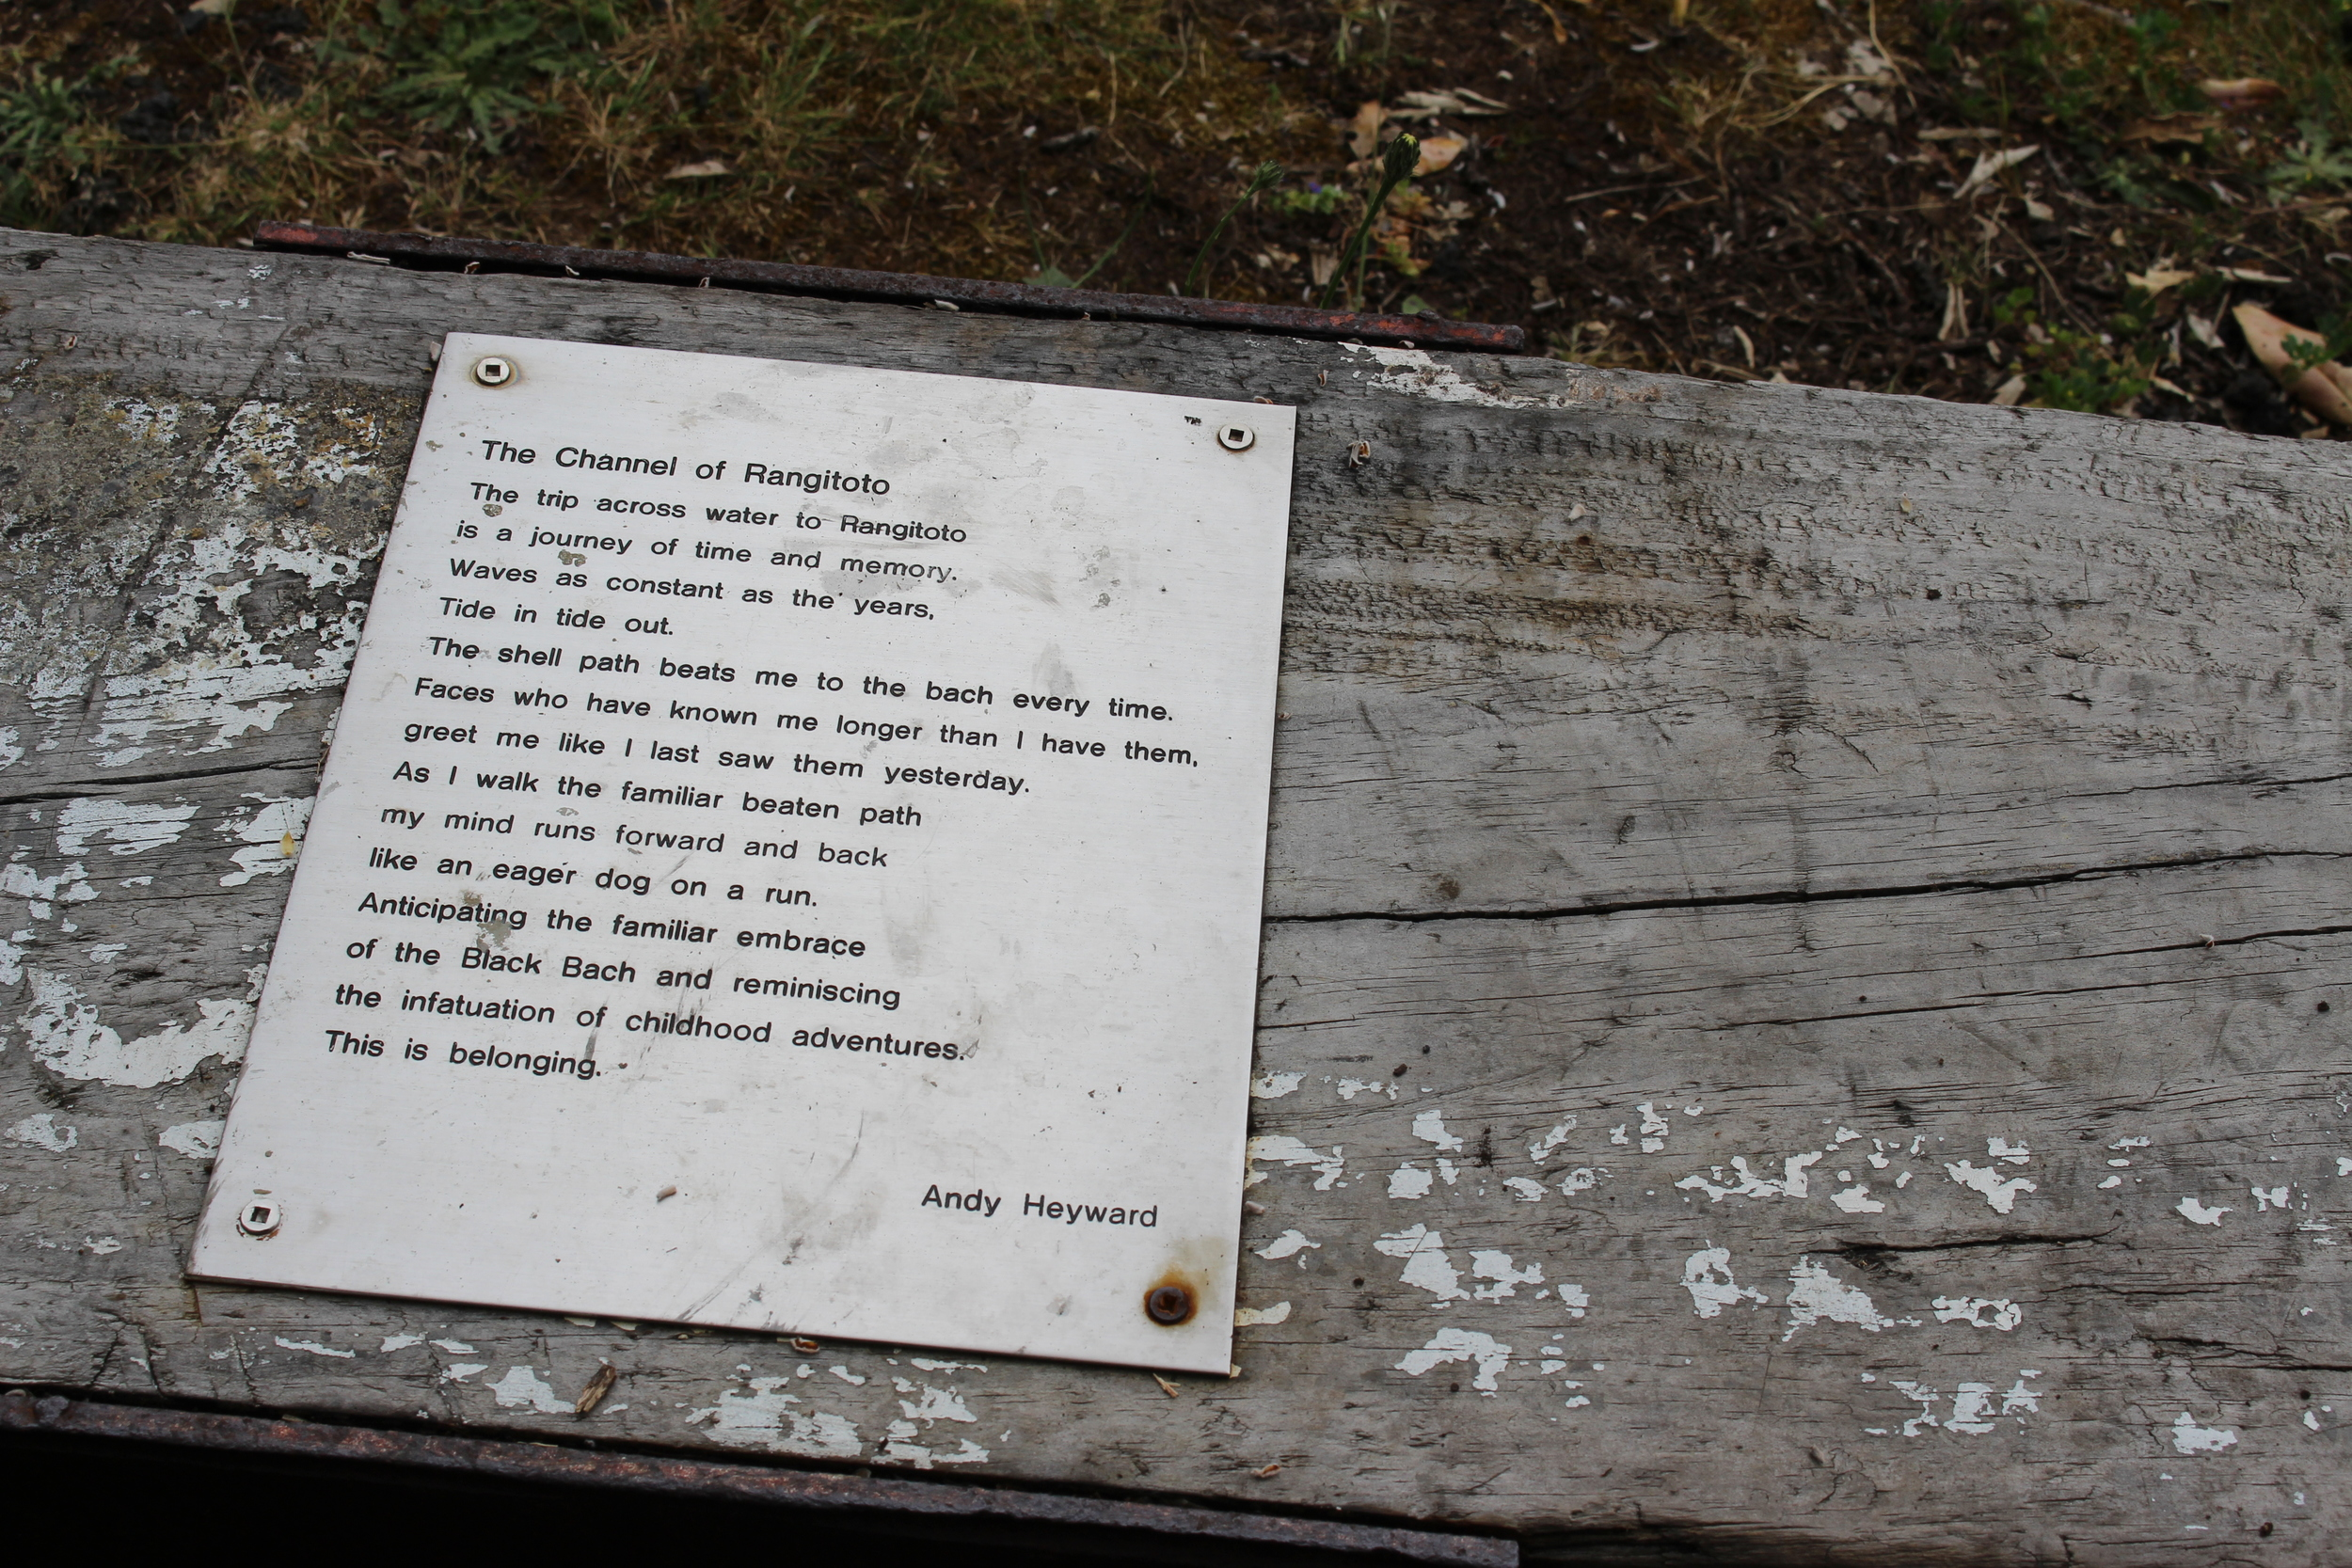 Poem on Rangitoto bench